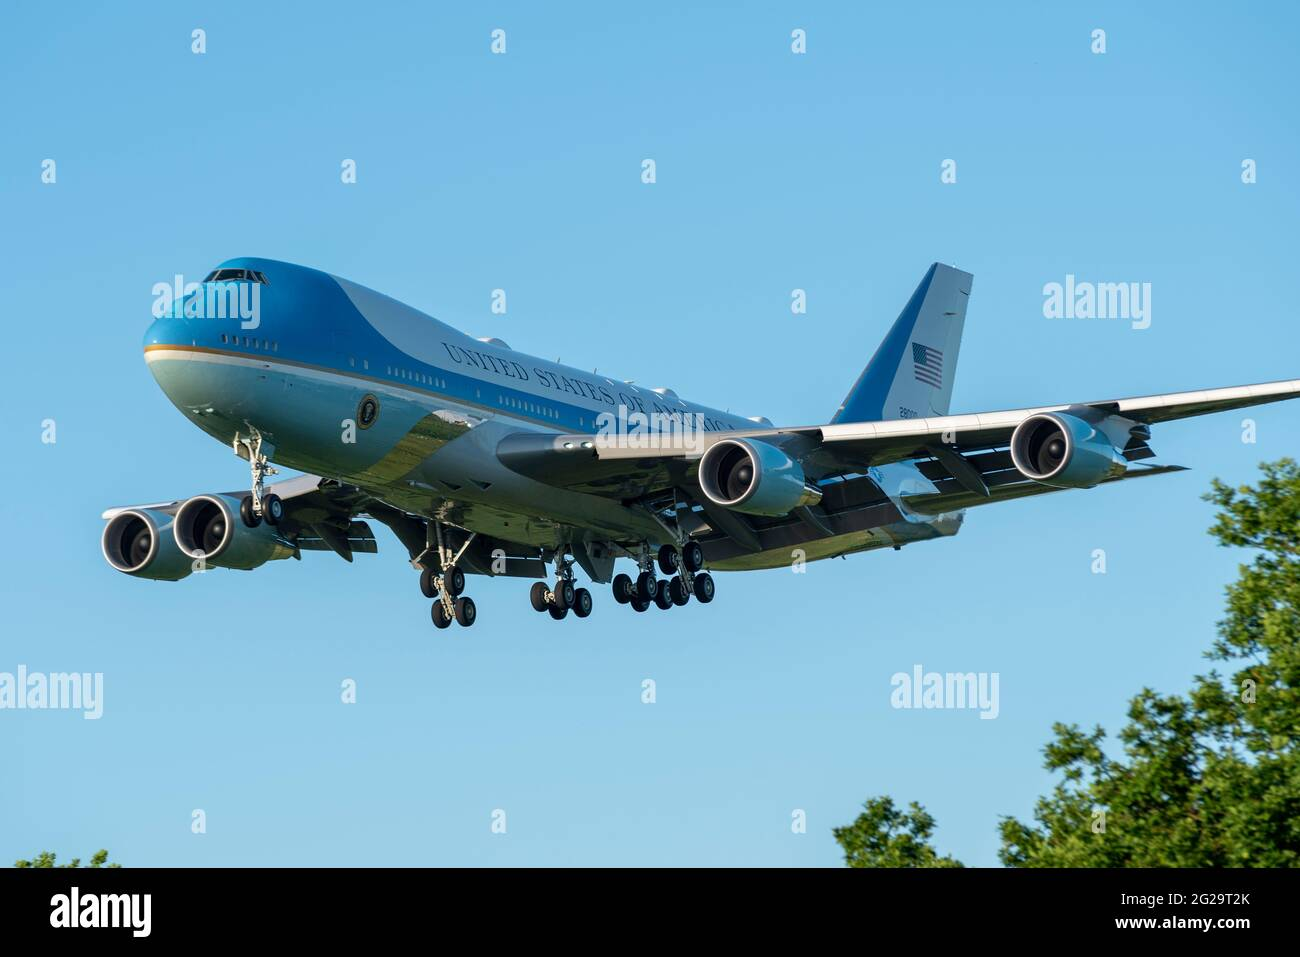 raf-mildenhall-suffolk-uk-9th-jun-2021-us-president-joe-biden-has-flown-from-washington-to-raf-mildenhall-in-suffolk-aboard-air-force-one-a-boeing-vc-25a-converted-747-jumbo-jet-landing-in-the-early-evening-the-airbase-is-used-by-the-us-air-force-100th-air-refuelling-wing-whose-stationed-personnel-will-be-inspected-by-biden-as-the-first-scheduled-event-of-his-five-day-uk-visit-biden-will-depart-later-in-the-evening-to-relocate-for-meetings-with-pm-boris-johnson-and-to-attend-the-g7-summit-in-cornwall-landing-over-woodland-2G29T2K.jpg